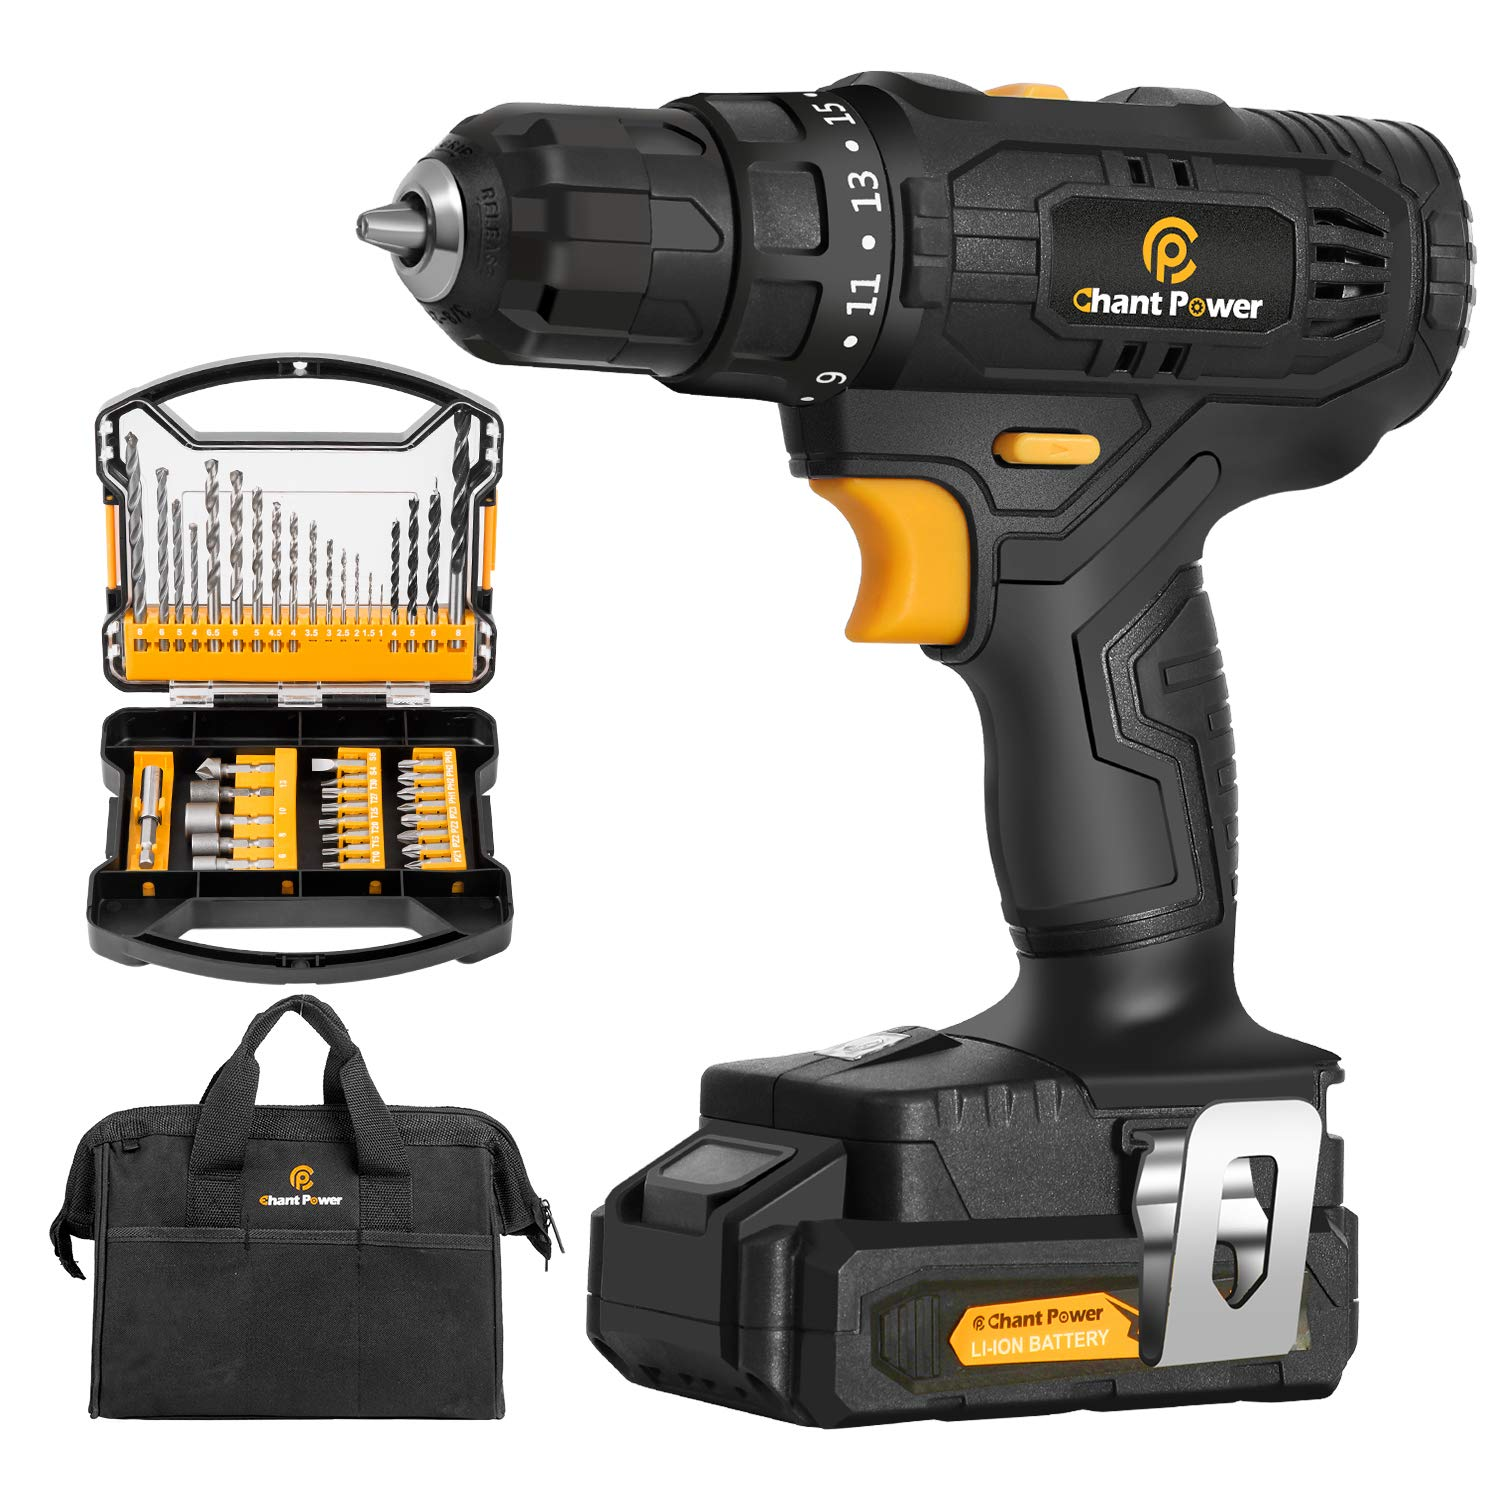 Cordless Drill, 20V Max Lithium-Ion Drill Driver Kit with 2 Variable Speeds, 41pcs Accessories, 15+1 Torque Setting, Built-in LED for Drilling Wood, Soft Metal, Plastic, C P CHANTPOWER